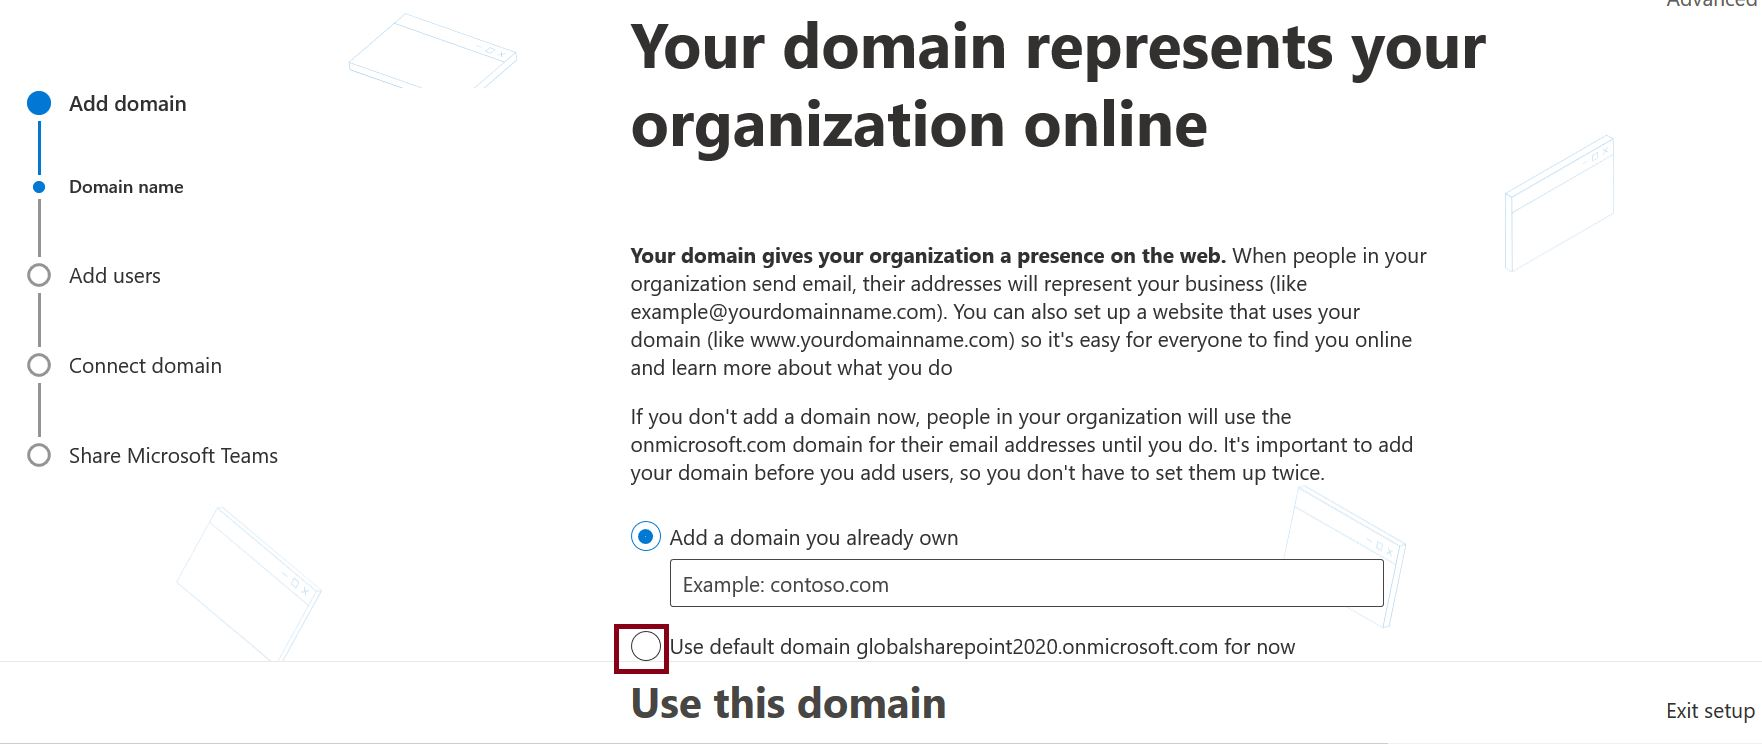 Add Domain - Your domain represents your organization online